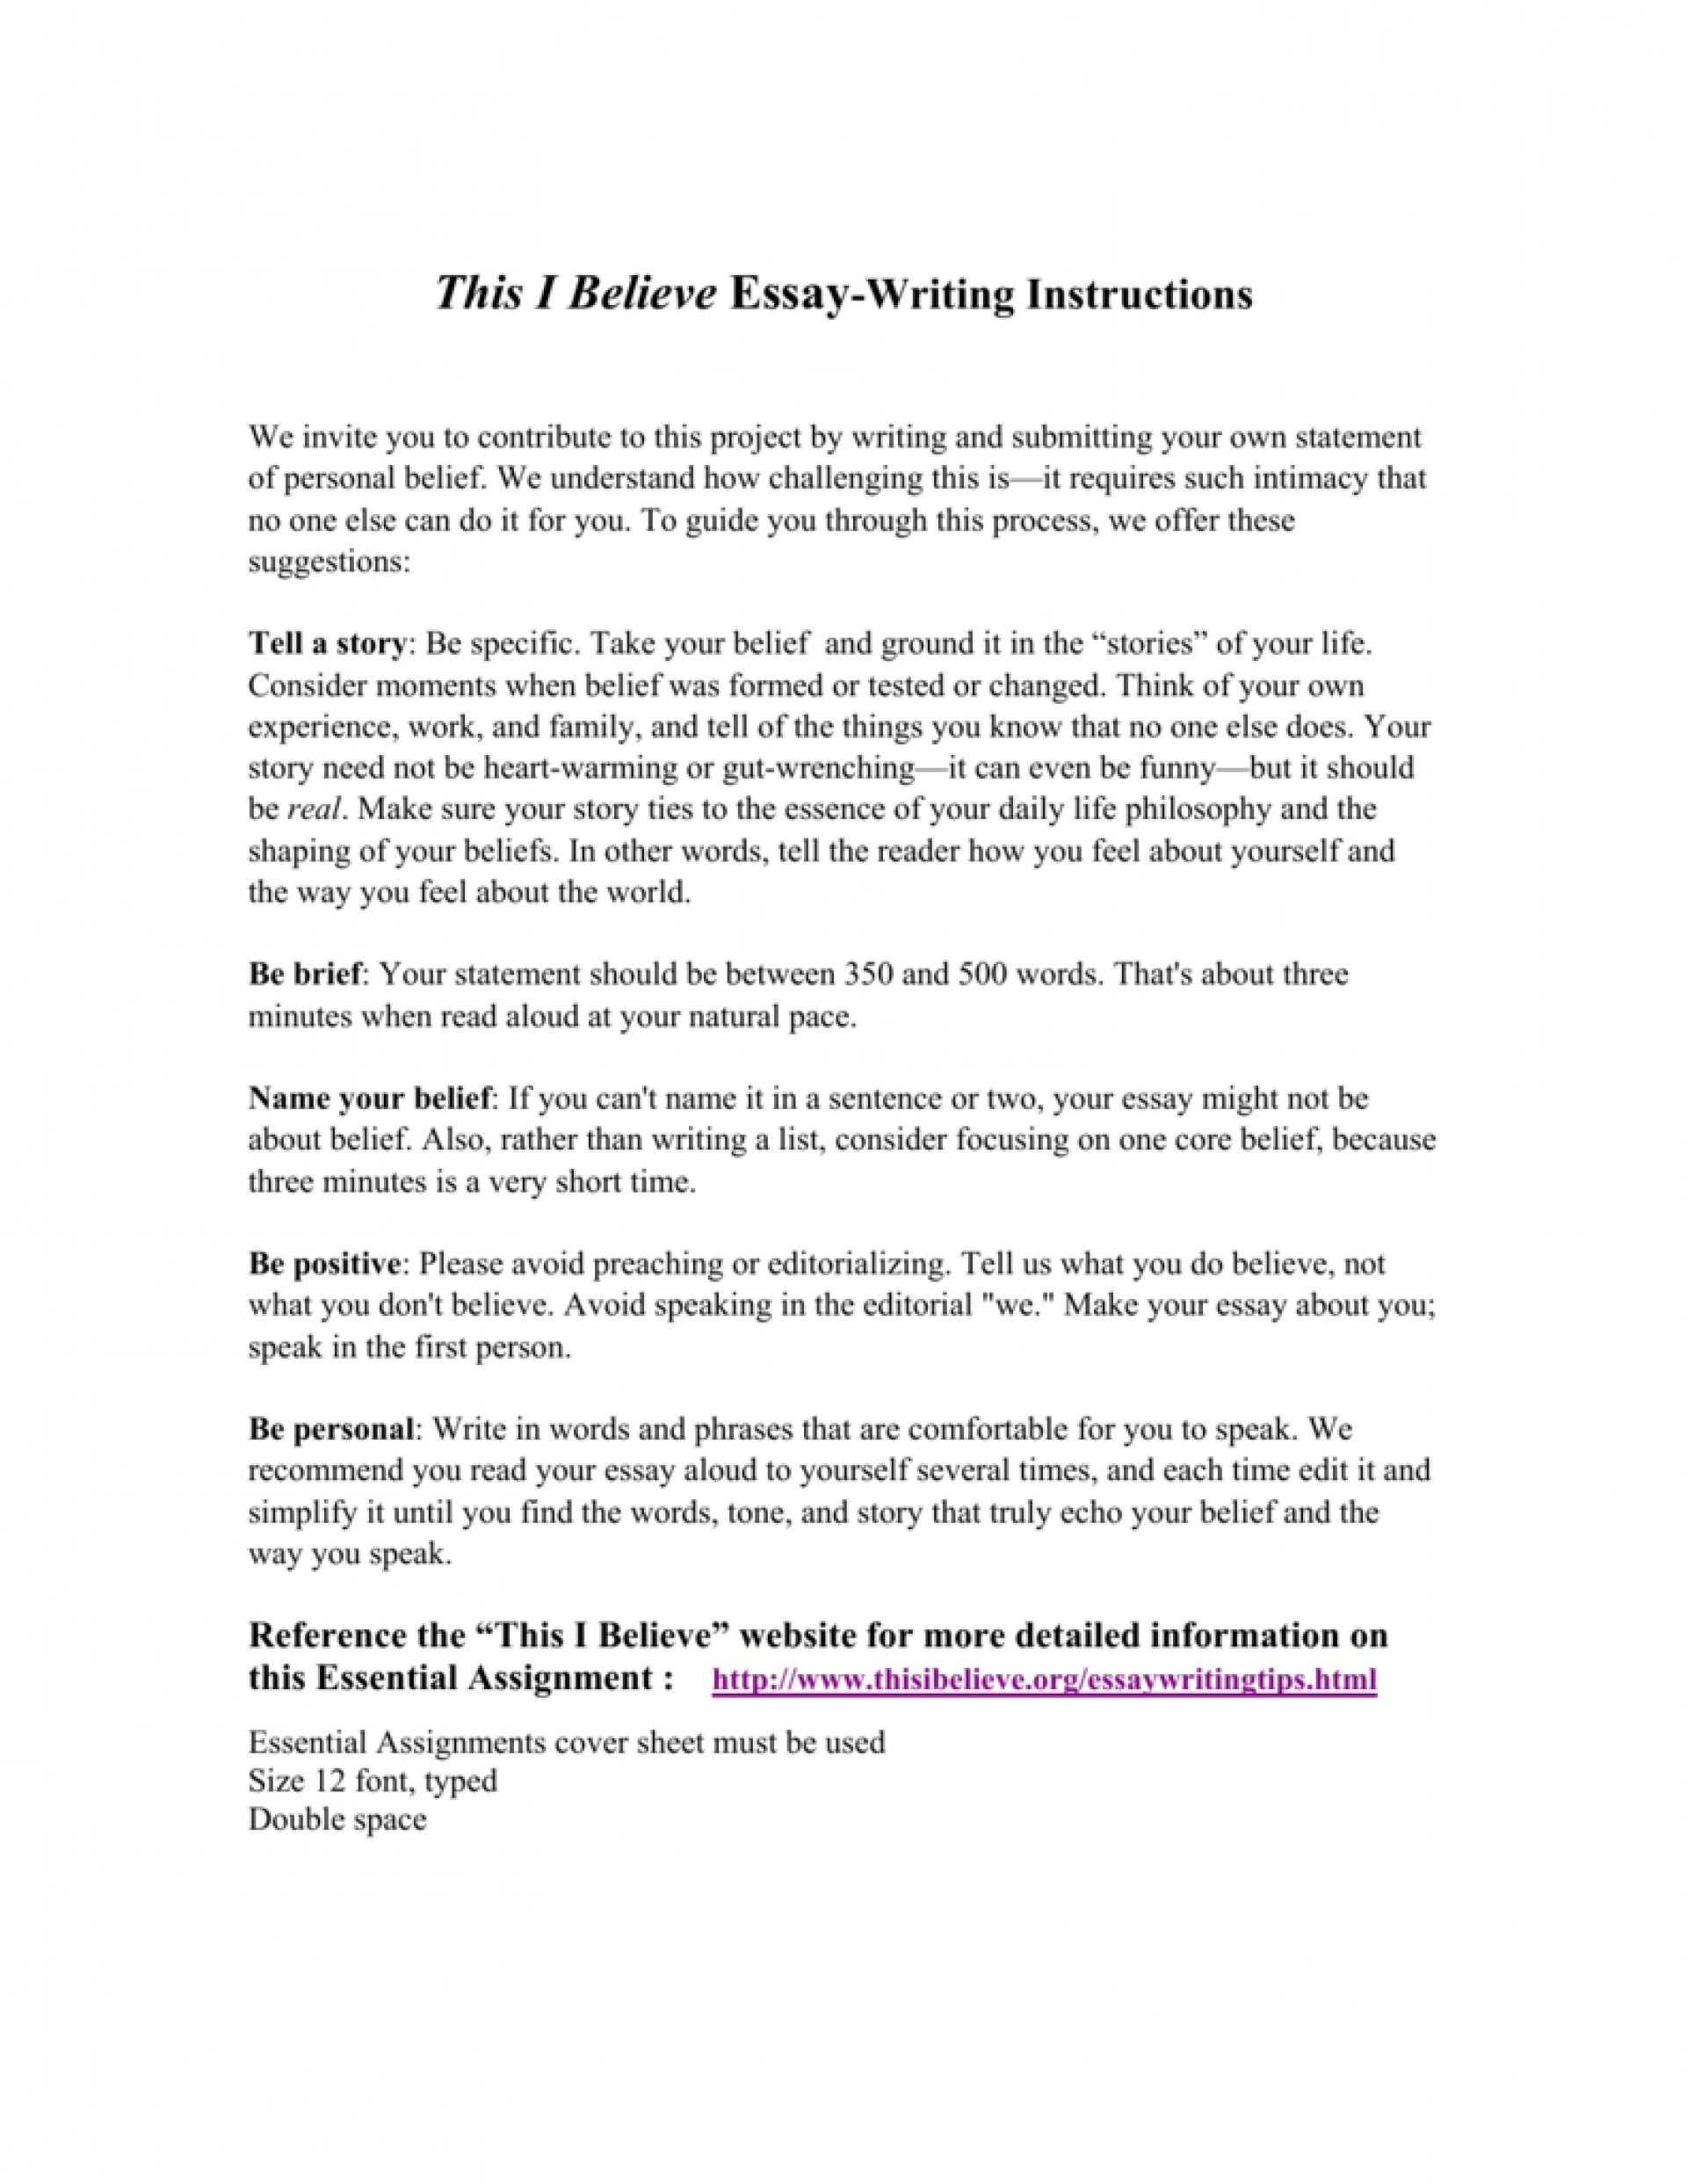 017 This I Believe Essays 008807219 1 Stupendous Essay Examples Personal College 1920